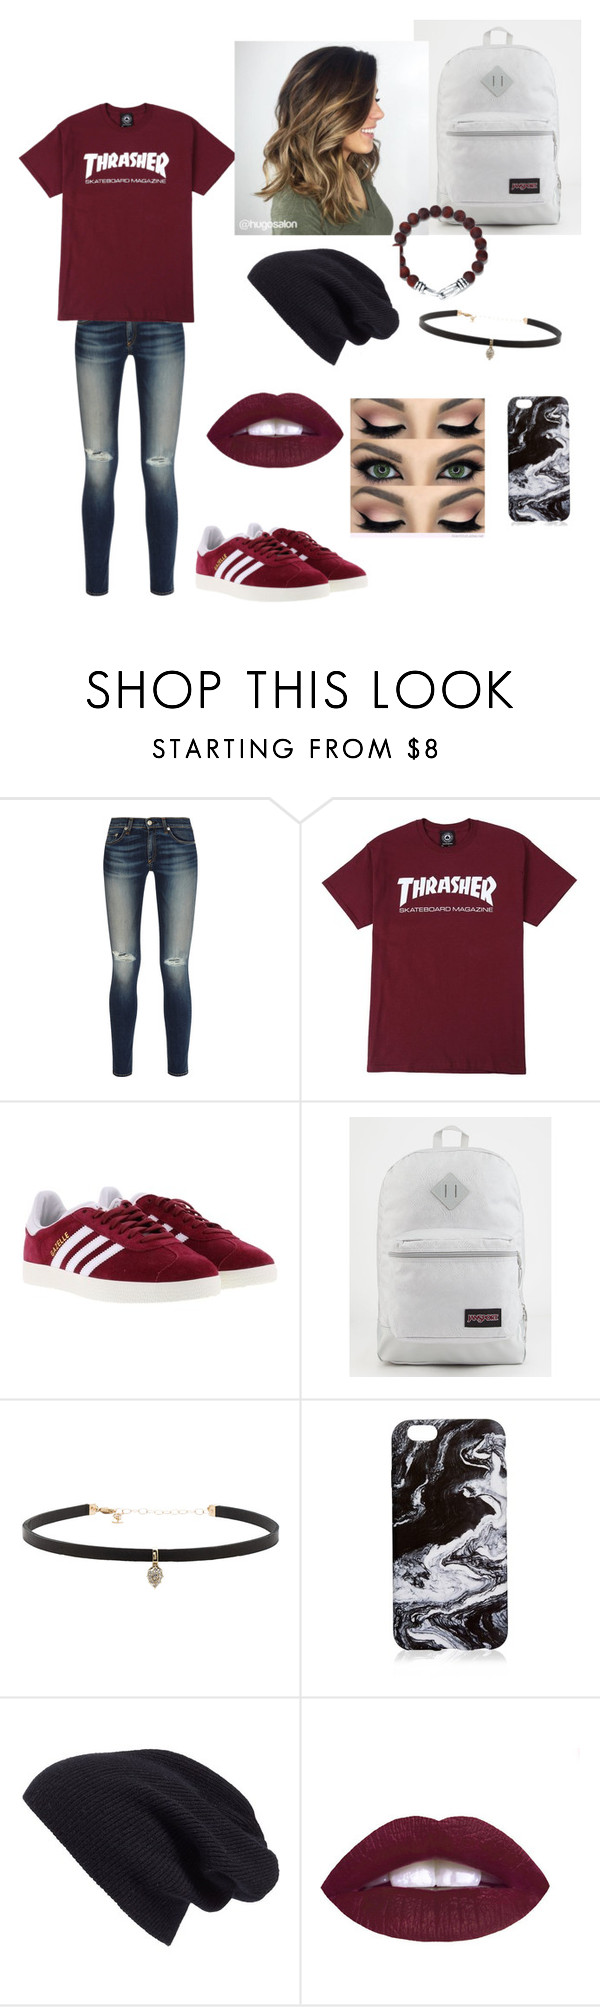 """Skateboarding with bae and friends"" by shareen-akmal ❤ liked on Polyvore featuring rag & bone, adidas, JanSport, Carbon & Hyde, Tiffany & Co. and Halogen"